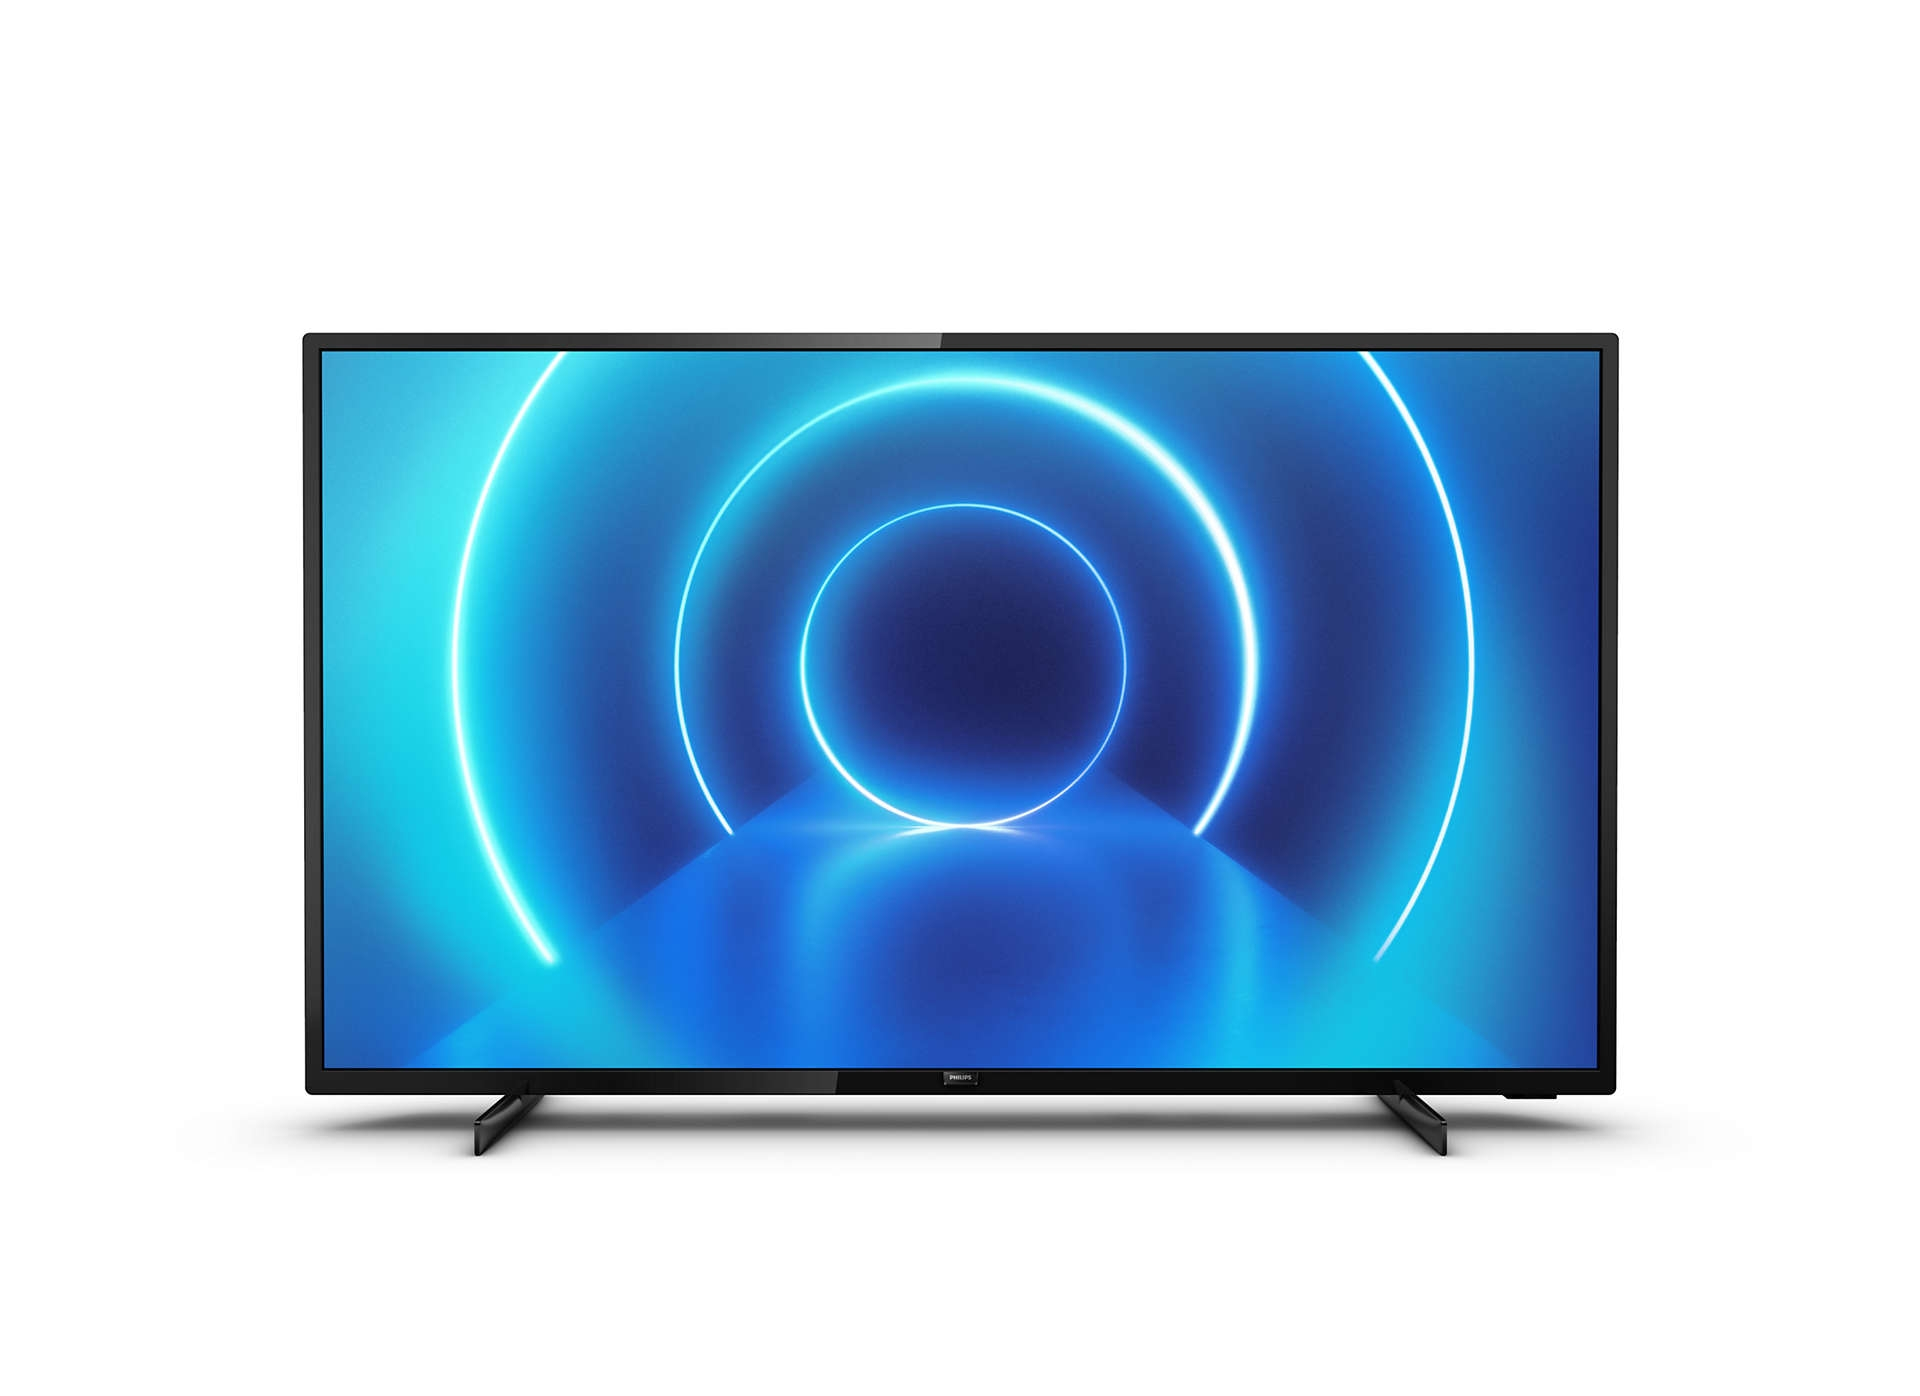 ЖК Телевизор Ultra HD Philips 58PUS7505 58 дюймов 58PUS7505/60 фото